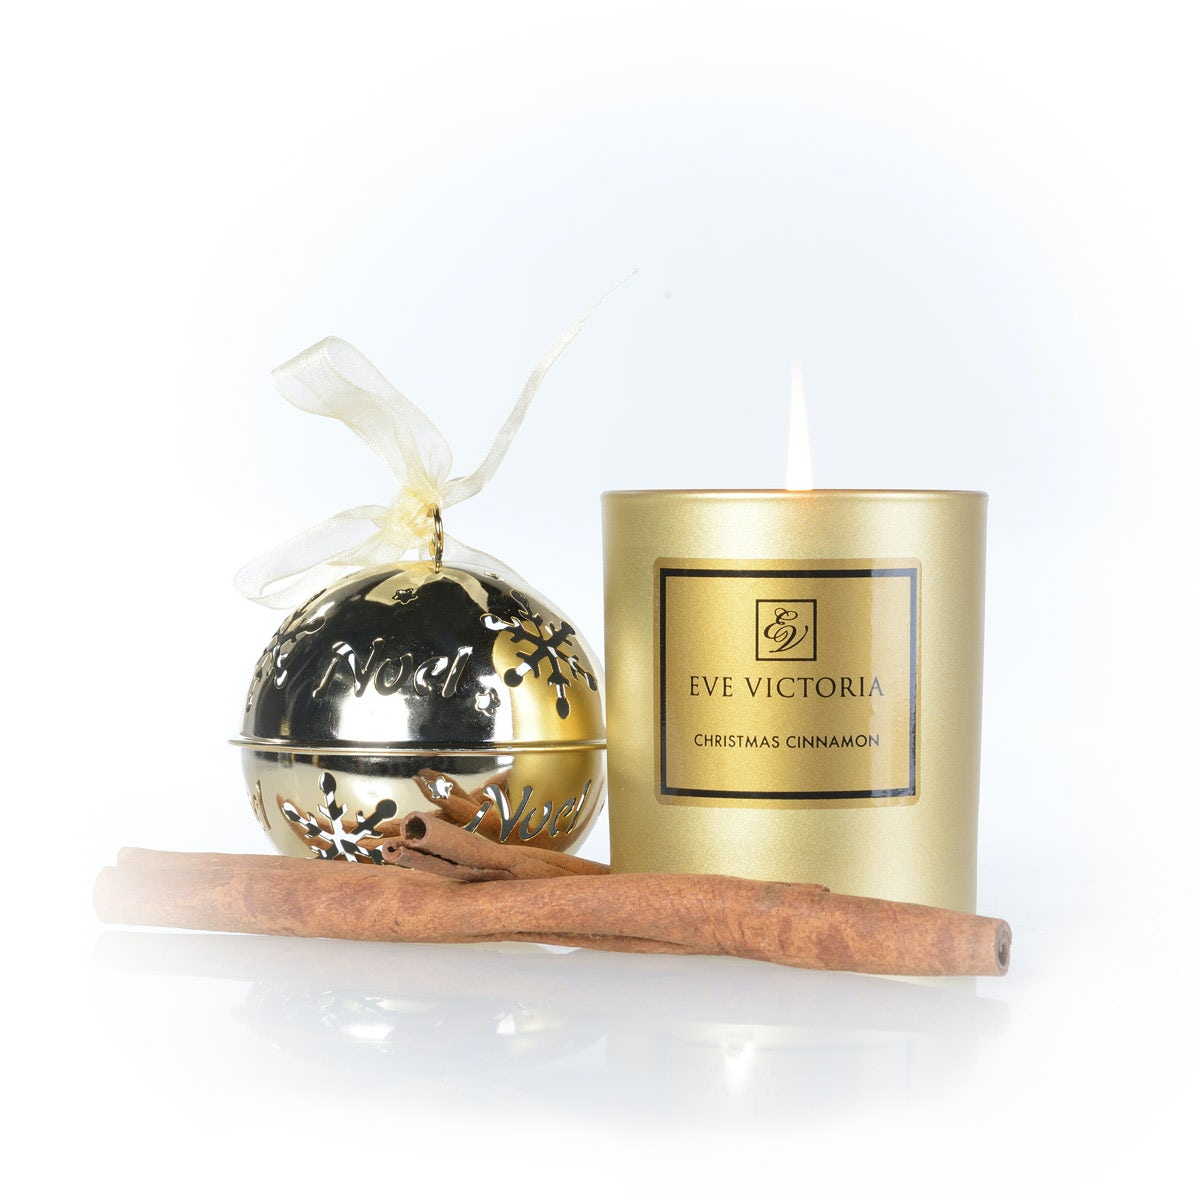 Eve Victoria Christmas cinnamon large candle 30cl